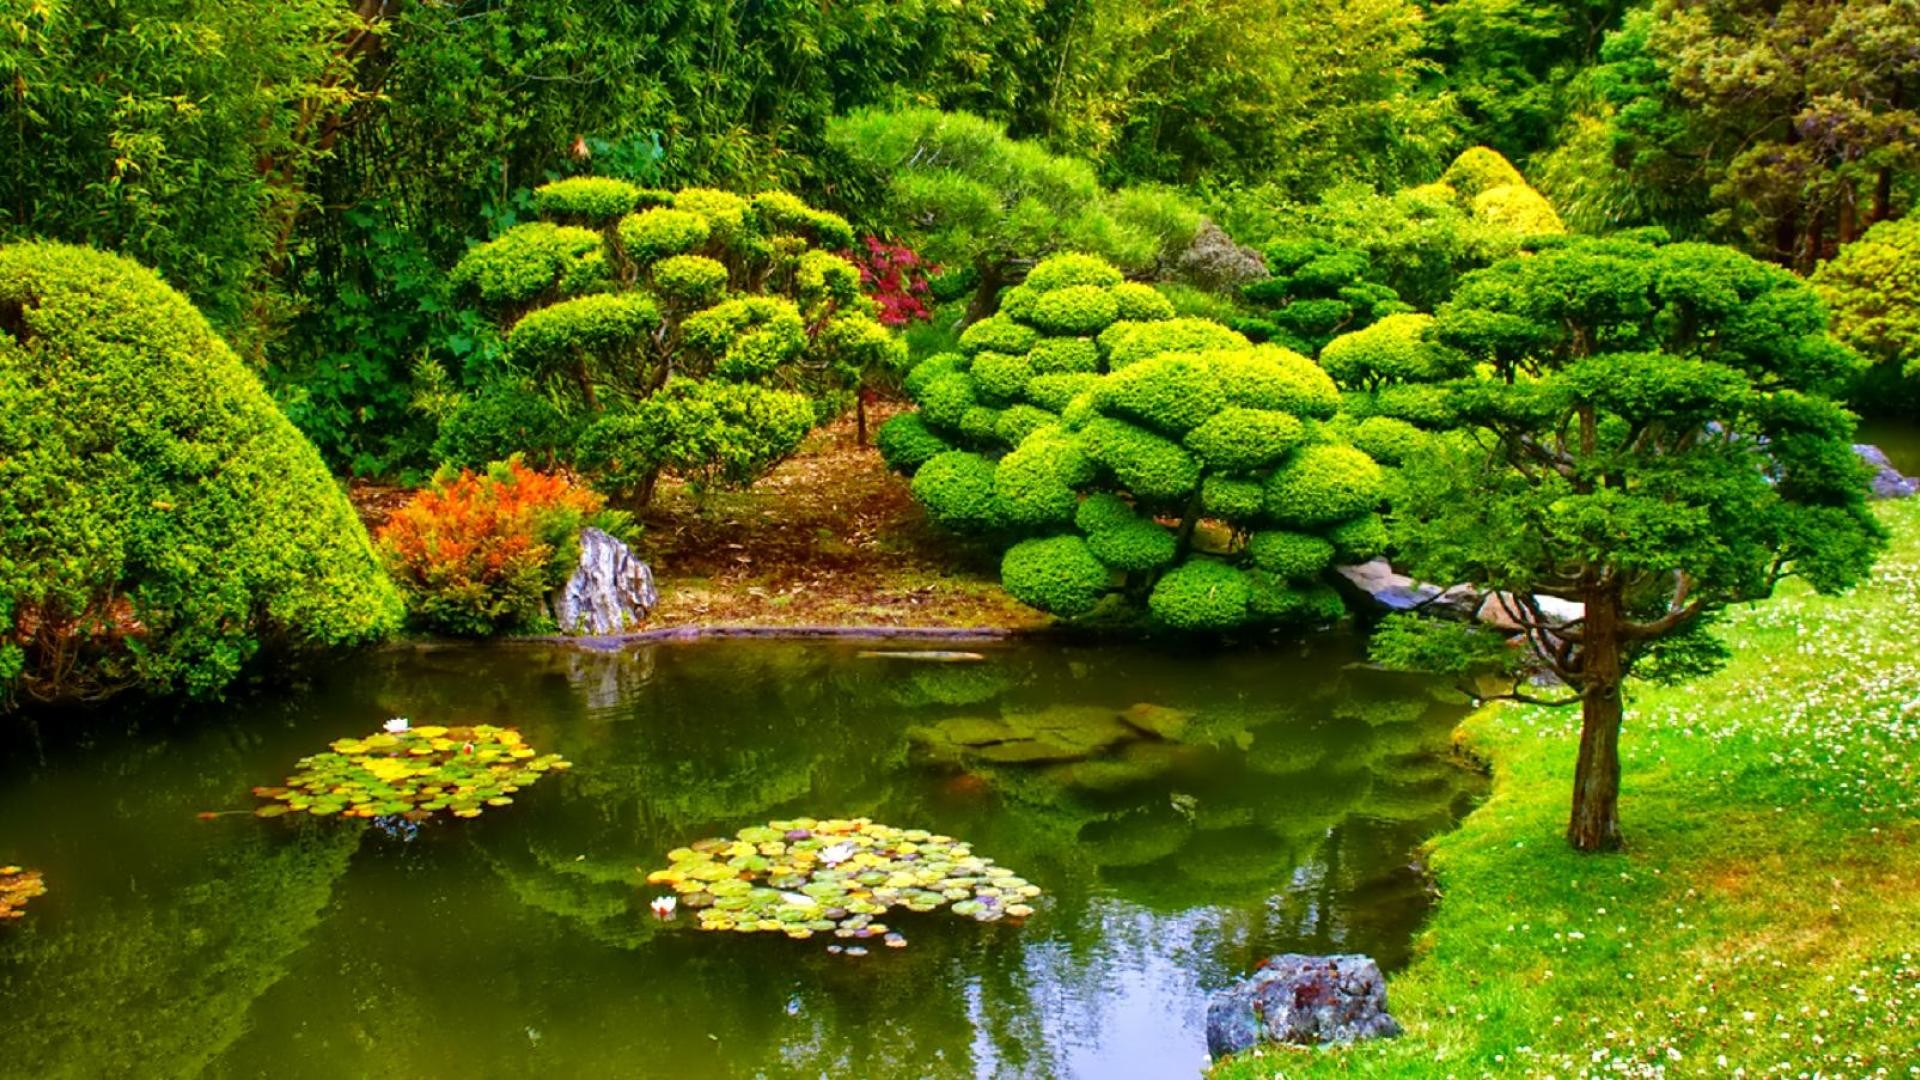 Res: 1920x1080, Japan garden 88730 High Quality and Resolution Wallpapers on